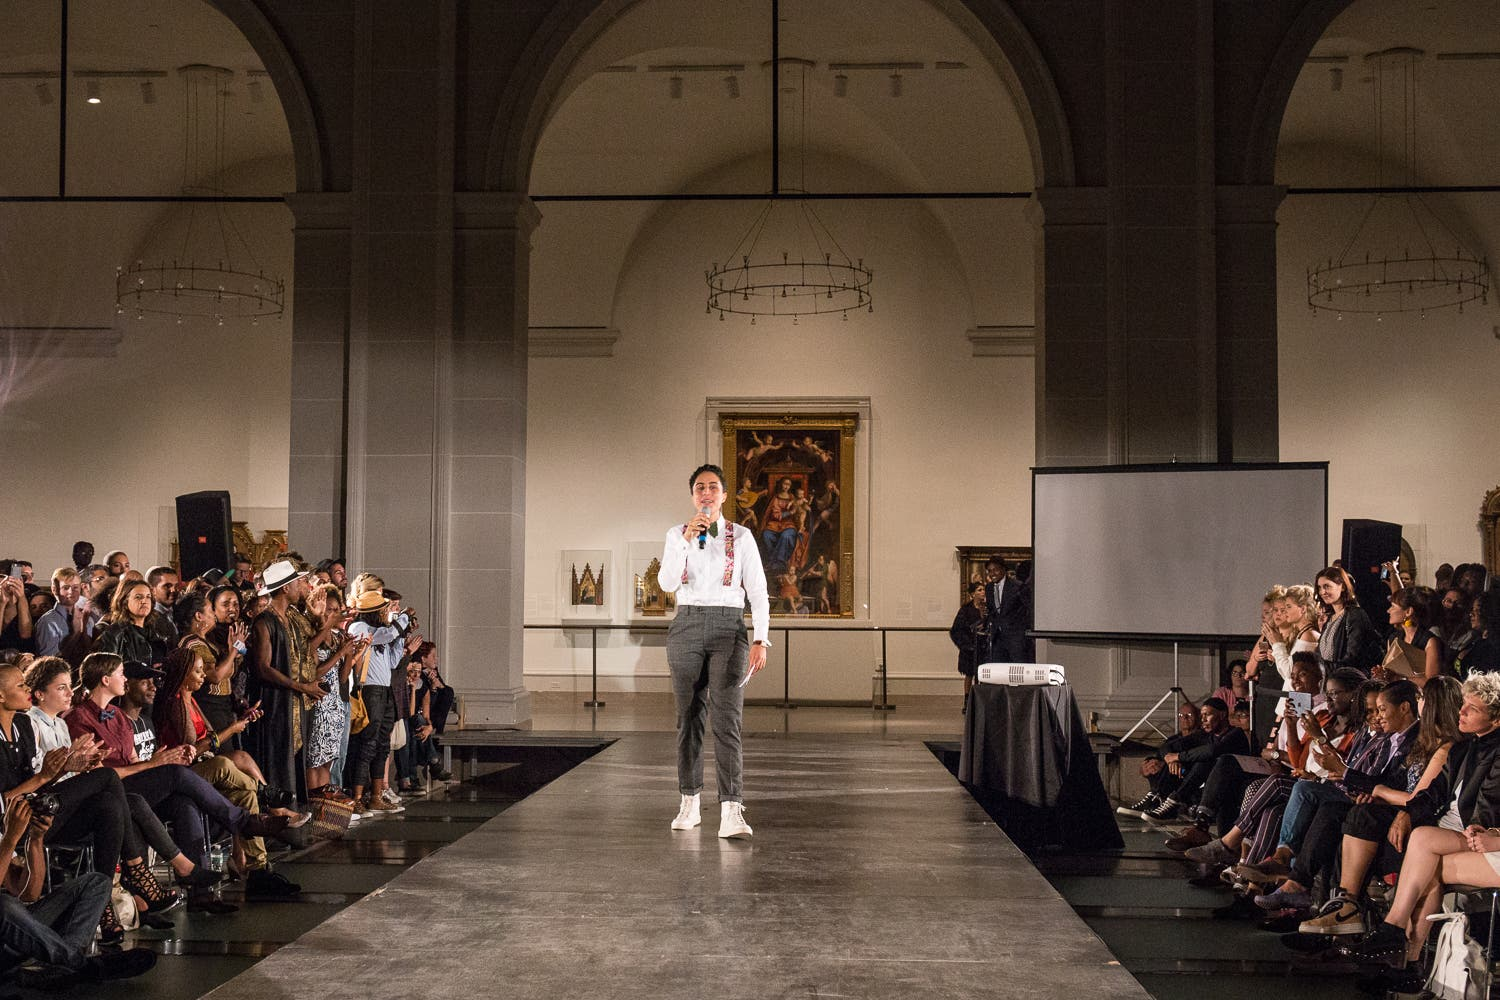 Dapperq Presents Id A Queer New York Fashion Week Show At The Brooklyn Museum 9 8 At 7pm Prospect Heights Ny Patch